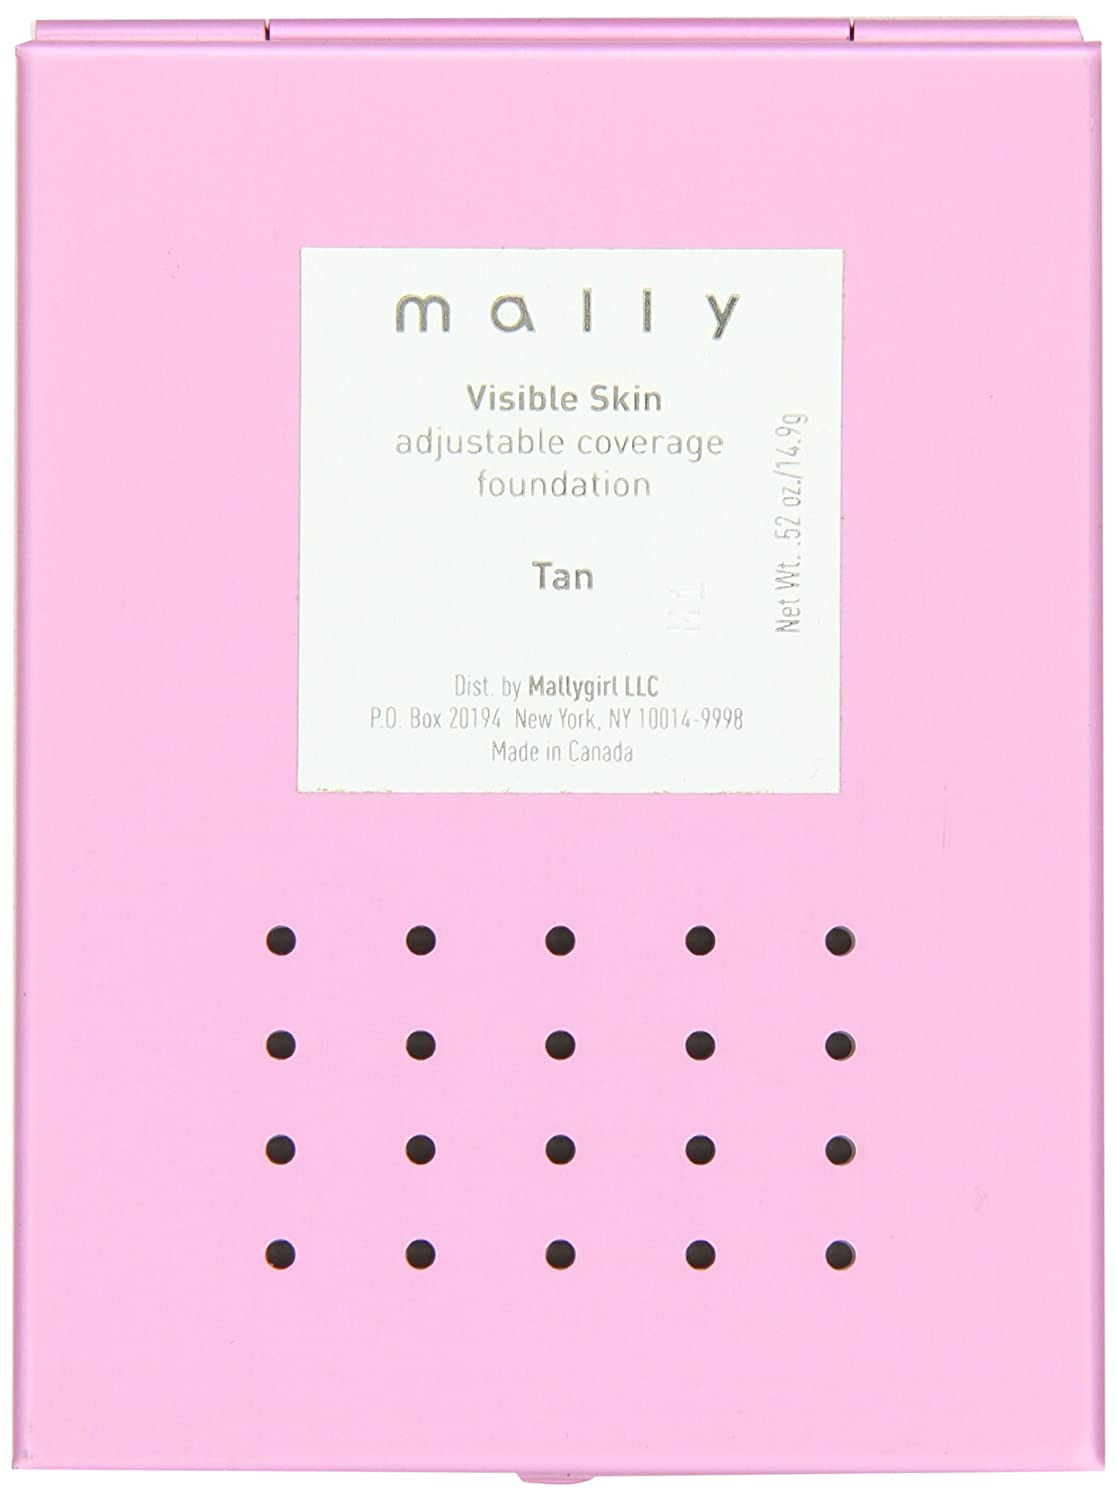 Visible Skin Adjustable by mally #3